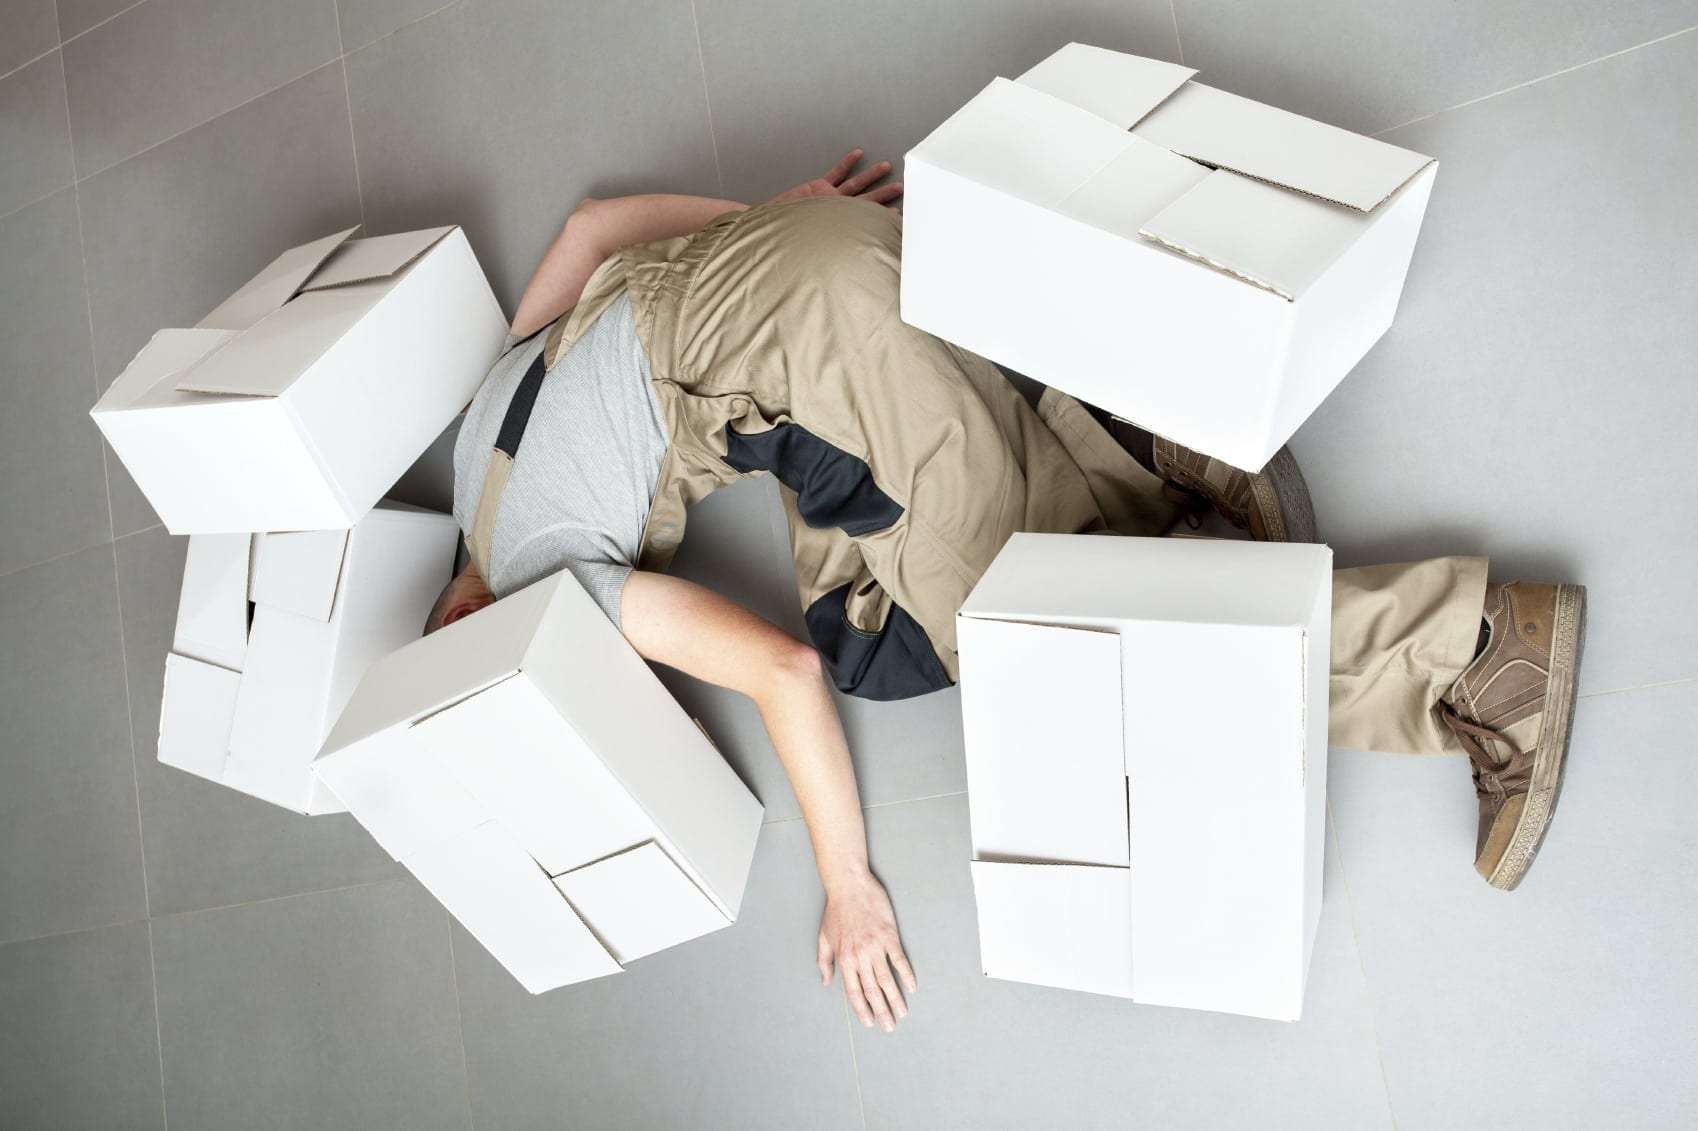 Man Laying Under Boxes Stock Photo